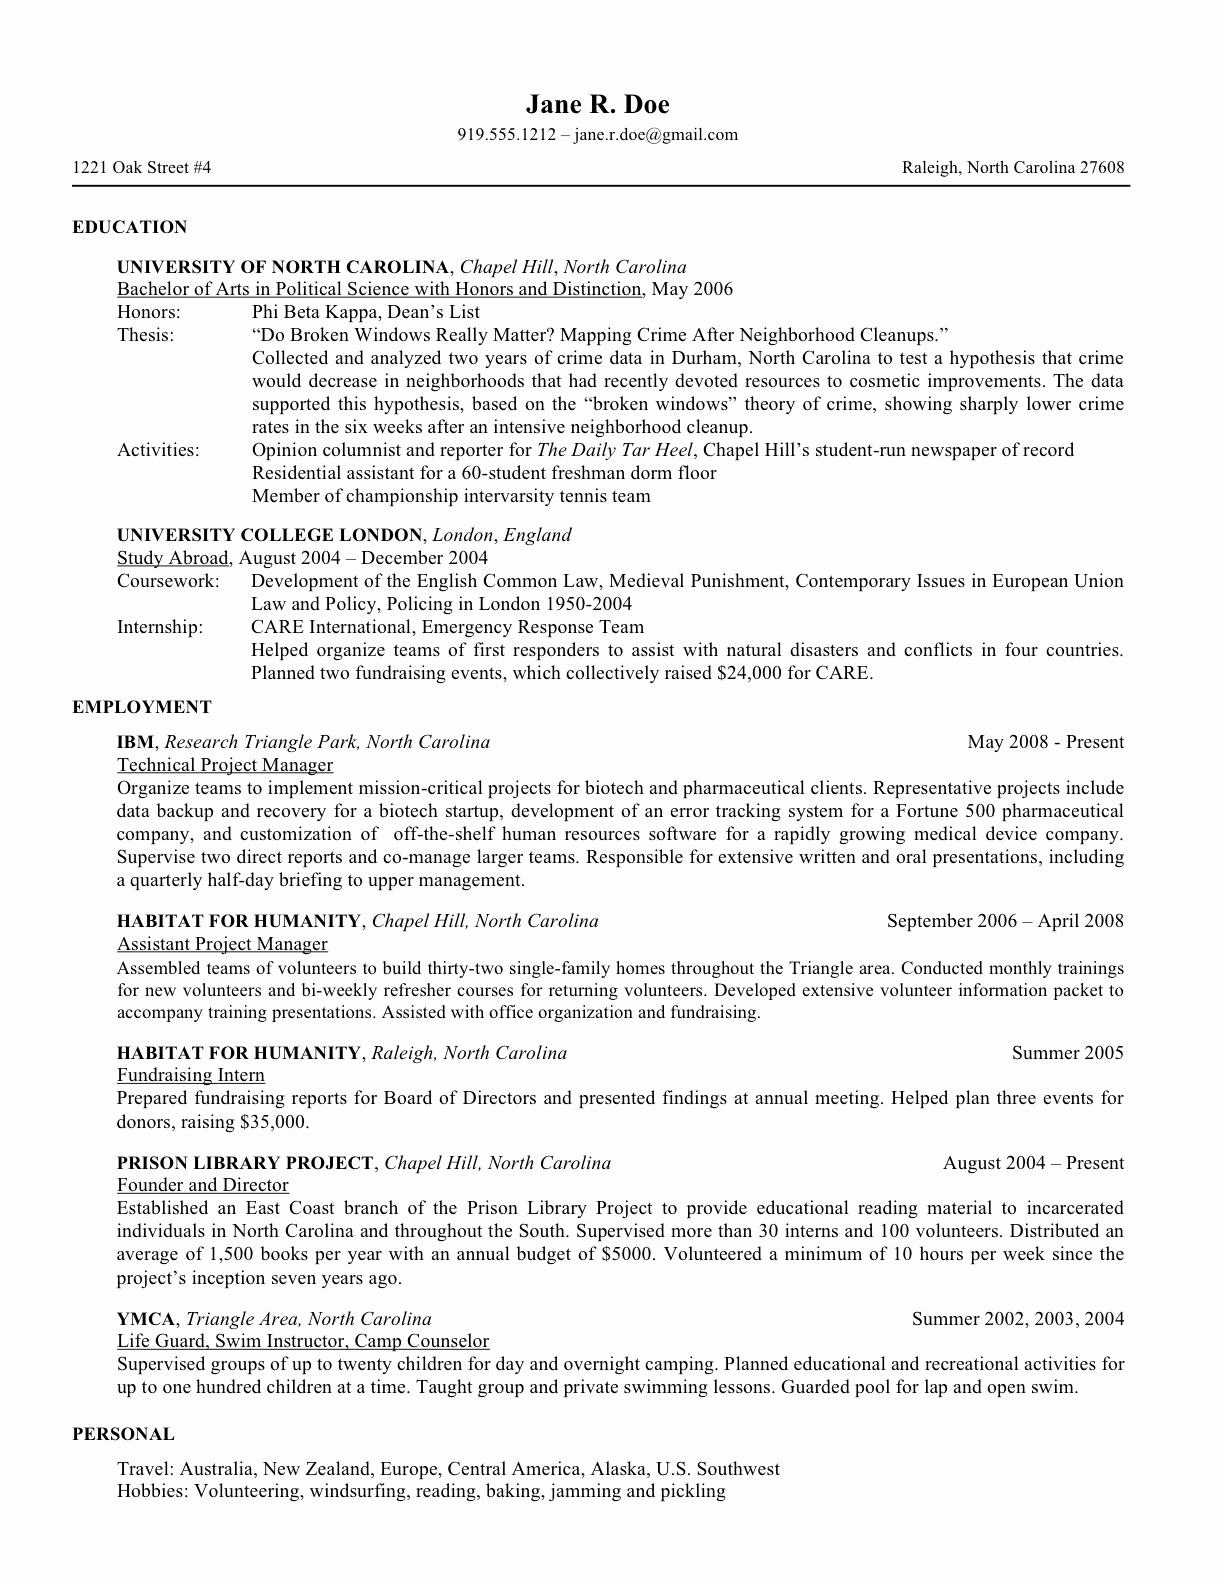 College Applicant Resume Template Beautiful Law Student Resume